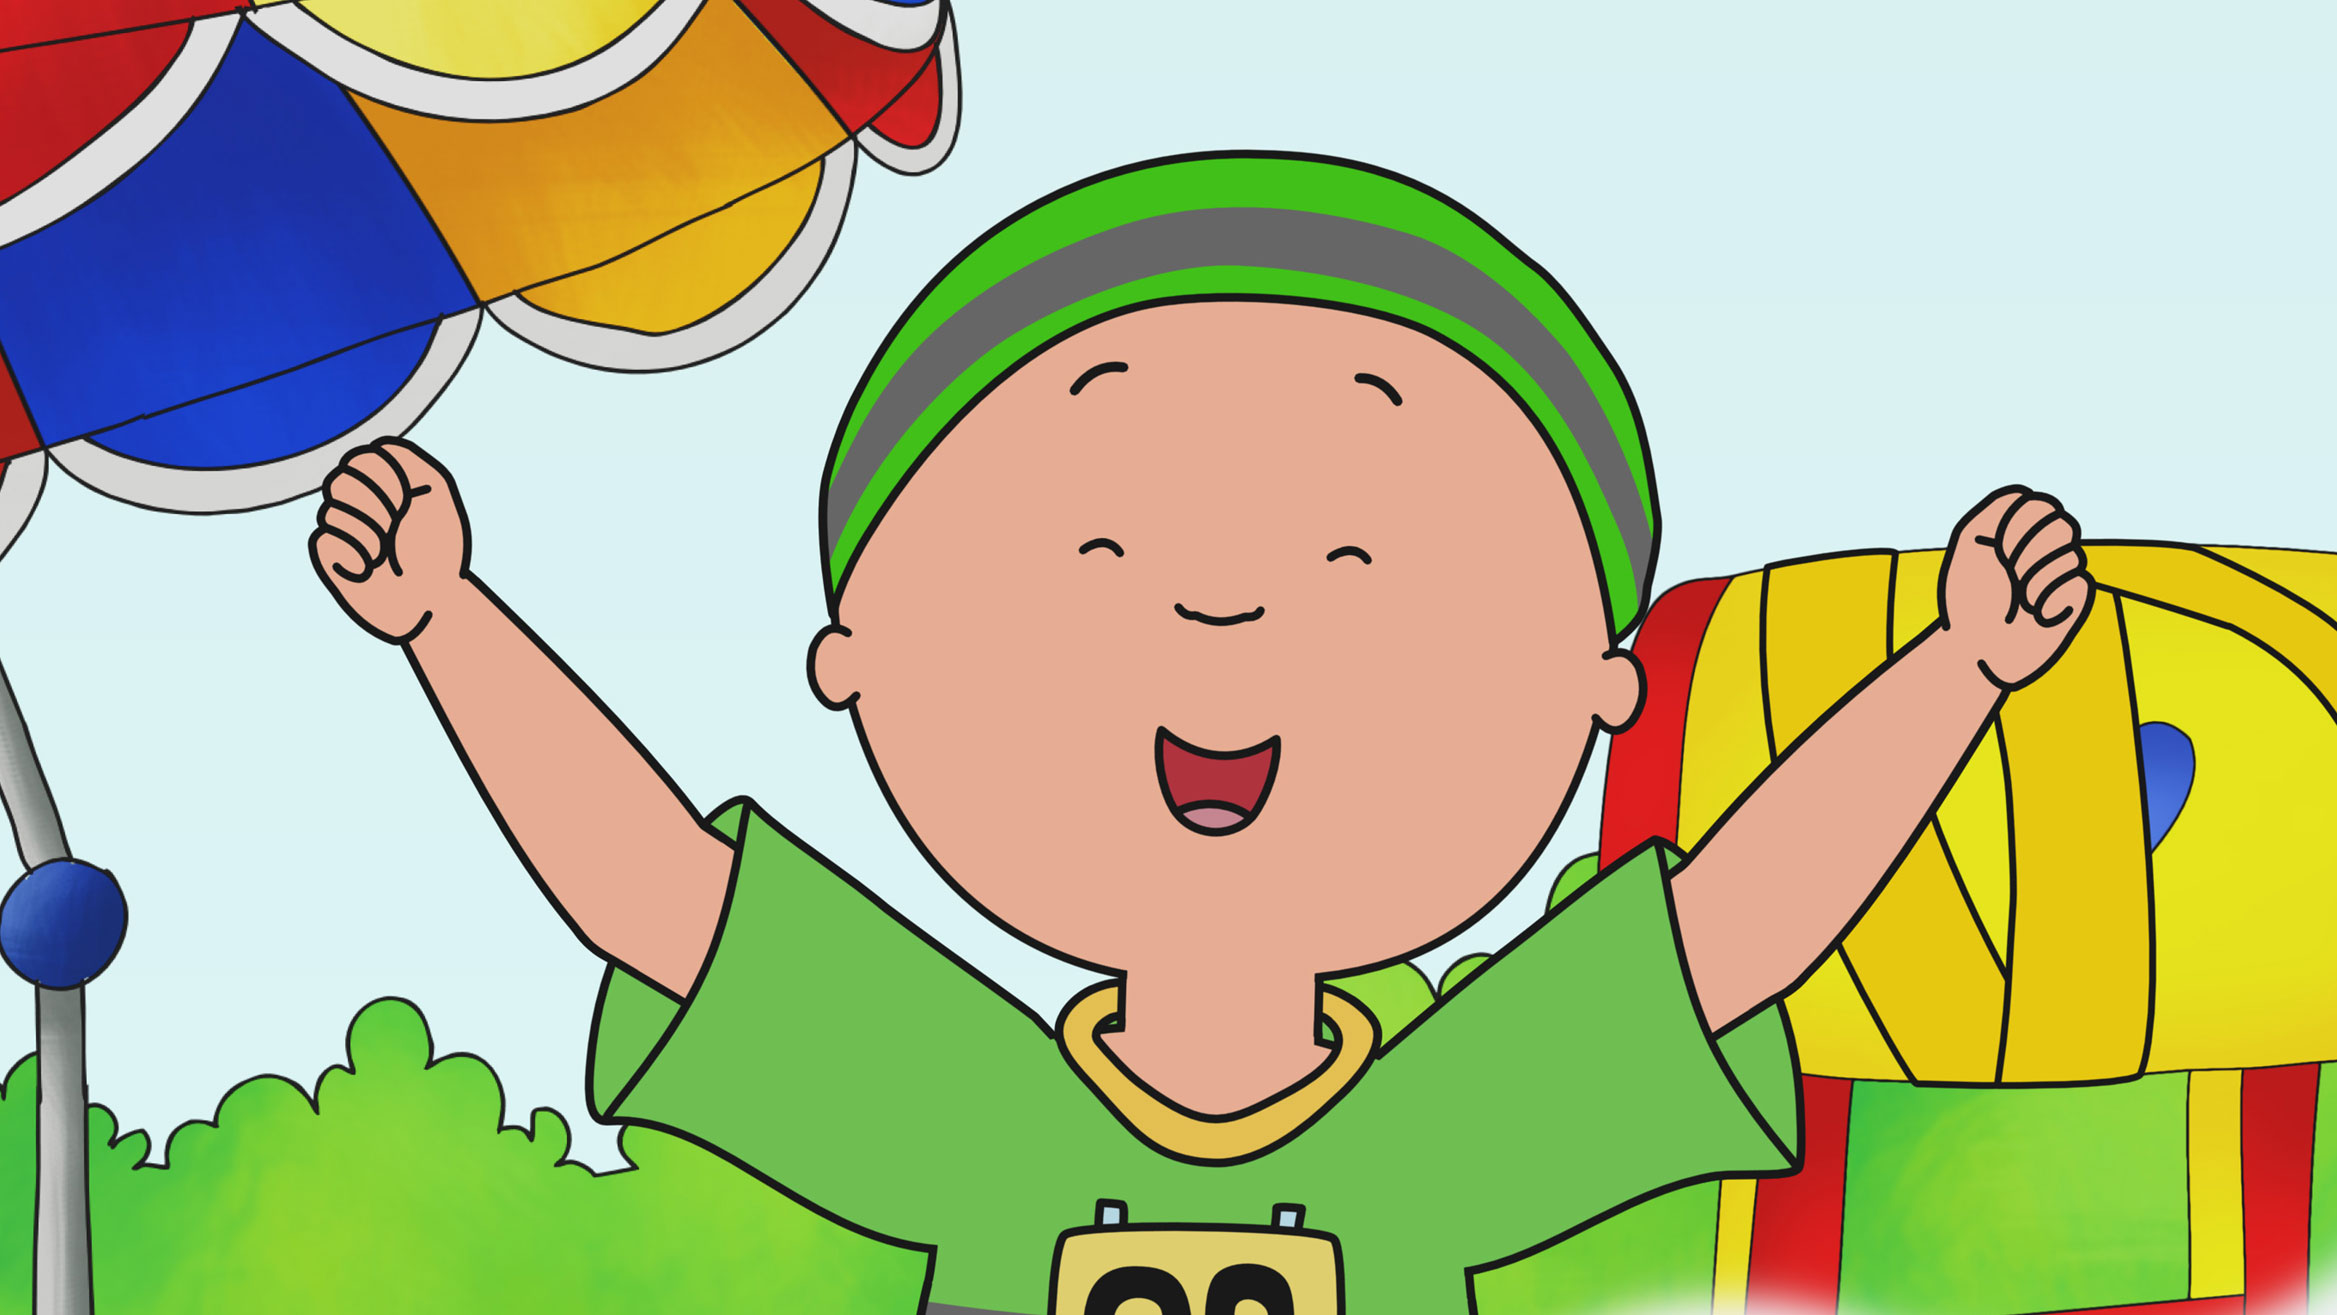 Happy Anime Wallpaper Accueil Caillou